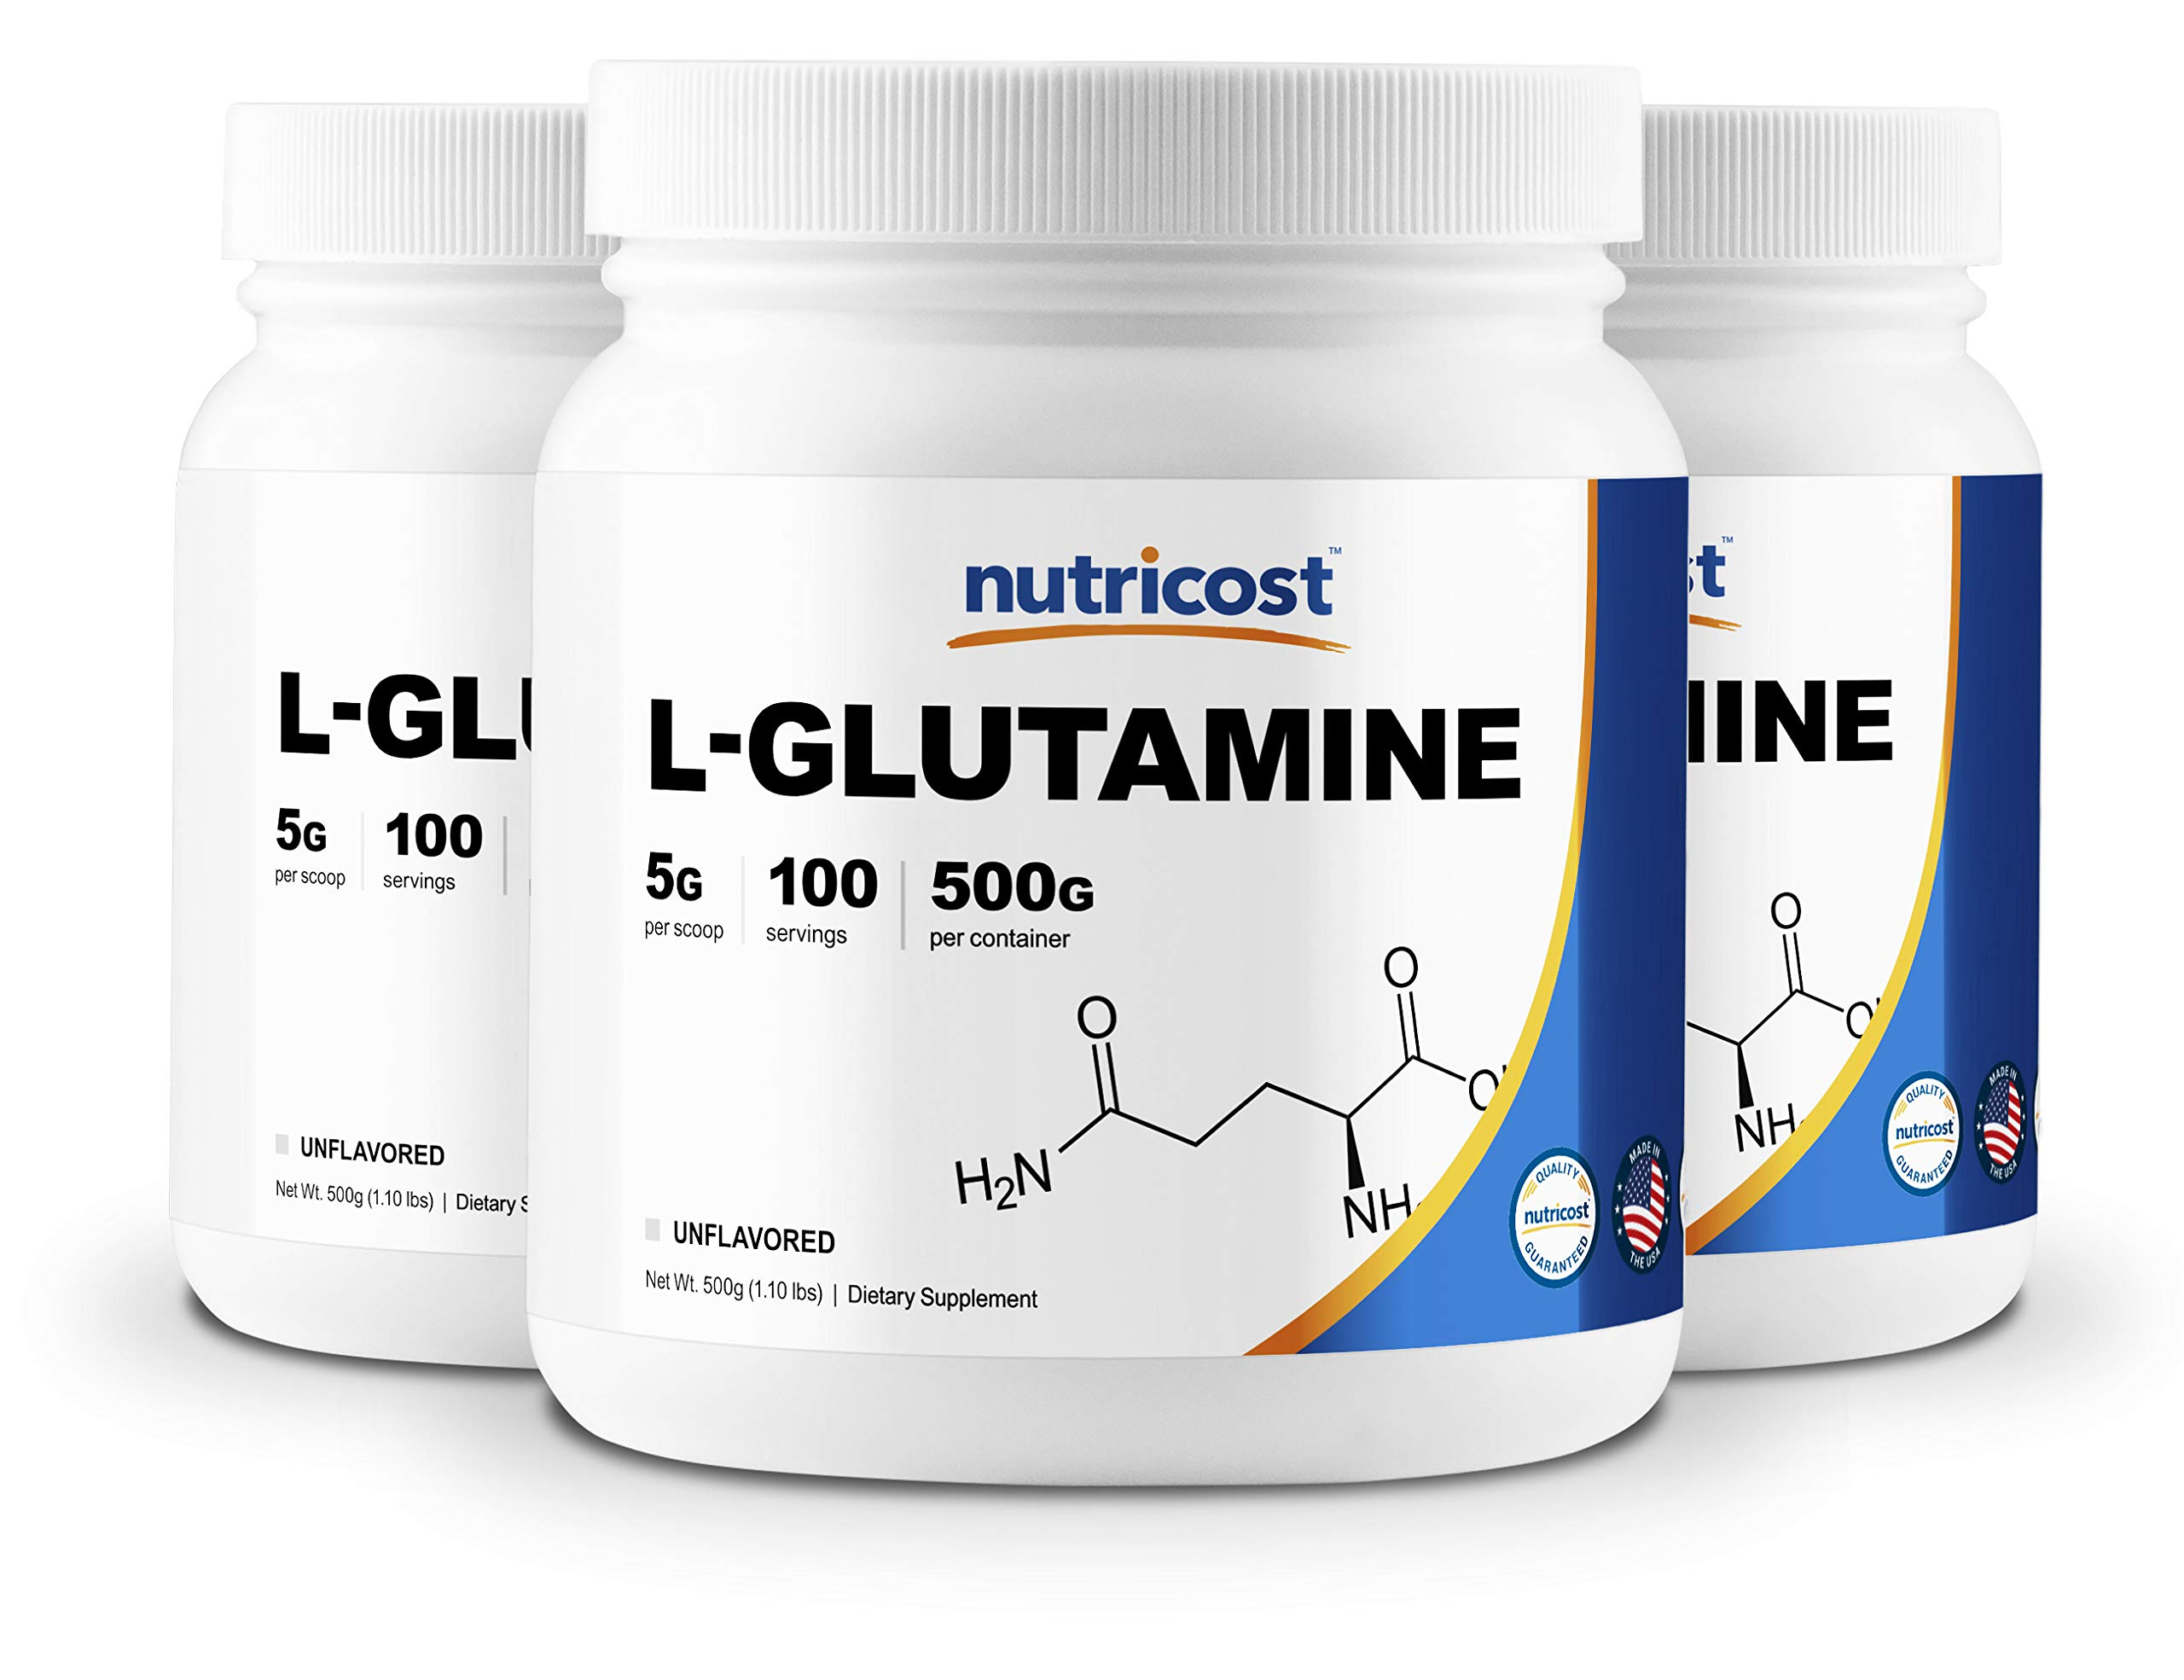 Nutricost L-Glutamine Powder 500G (3 Pack) - Pure L Glutamine - 5000mg Per Serving - 1.1 Pounds & 100 Servings Each - Highest Purity